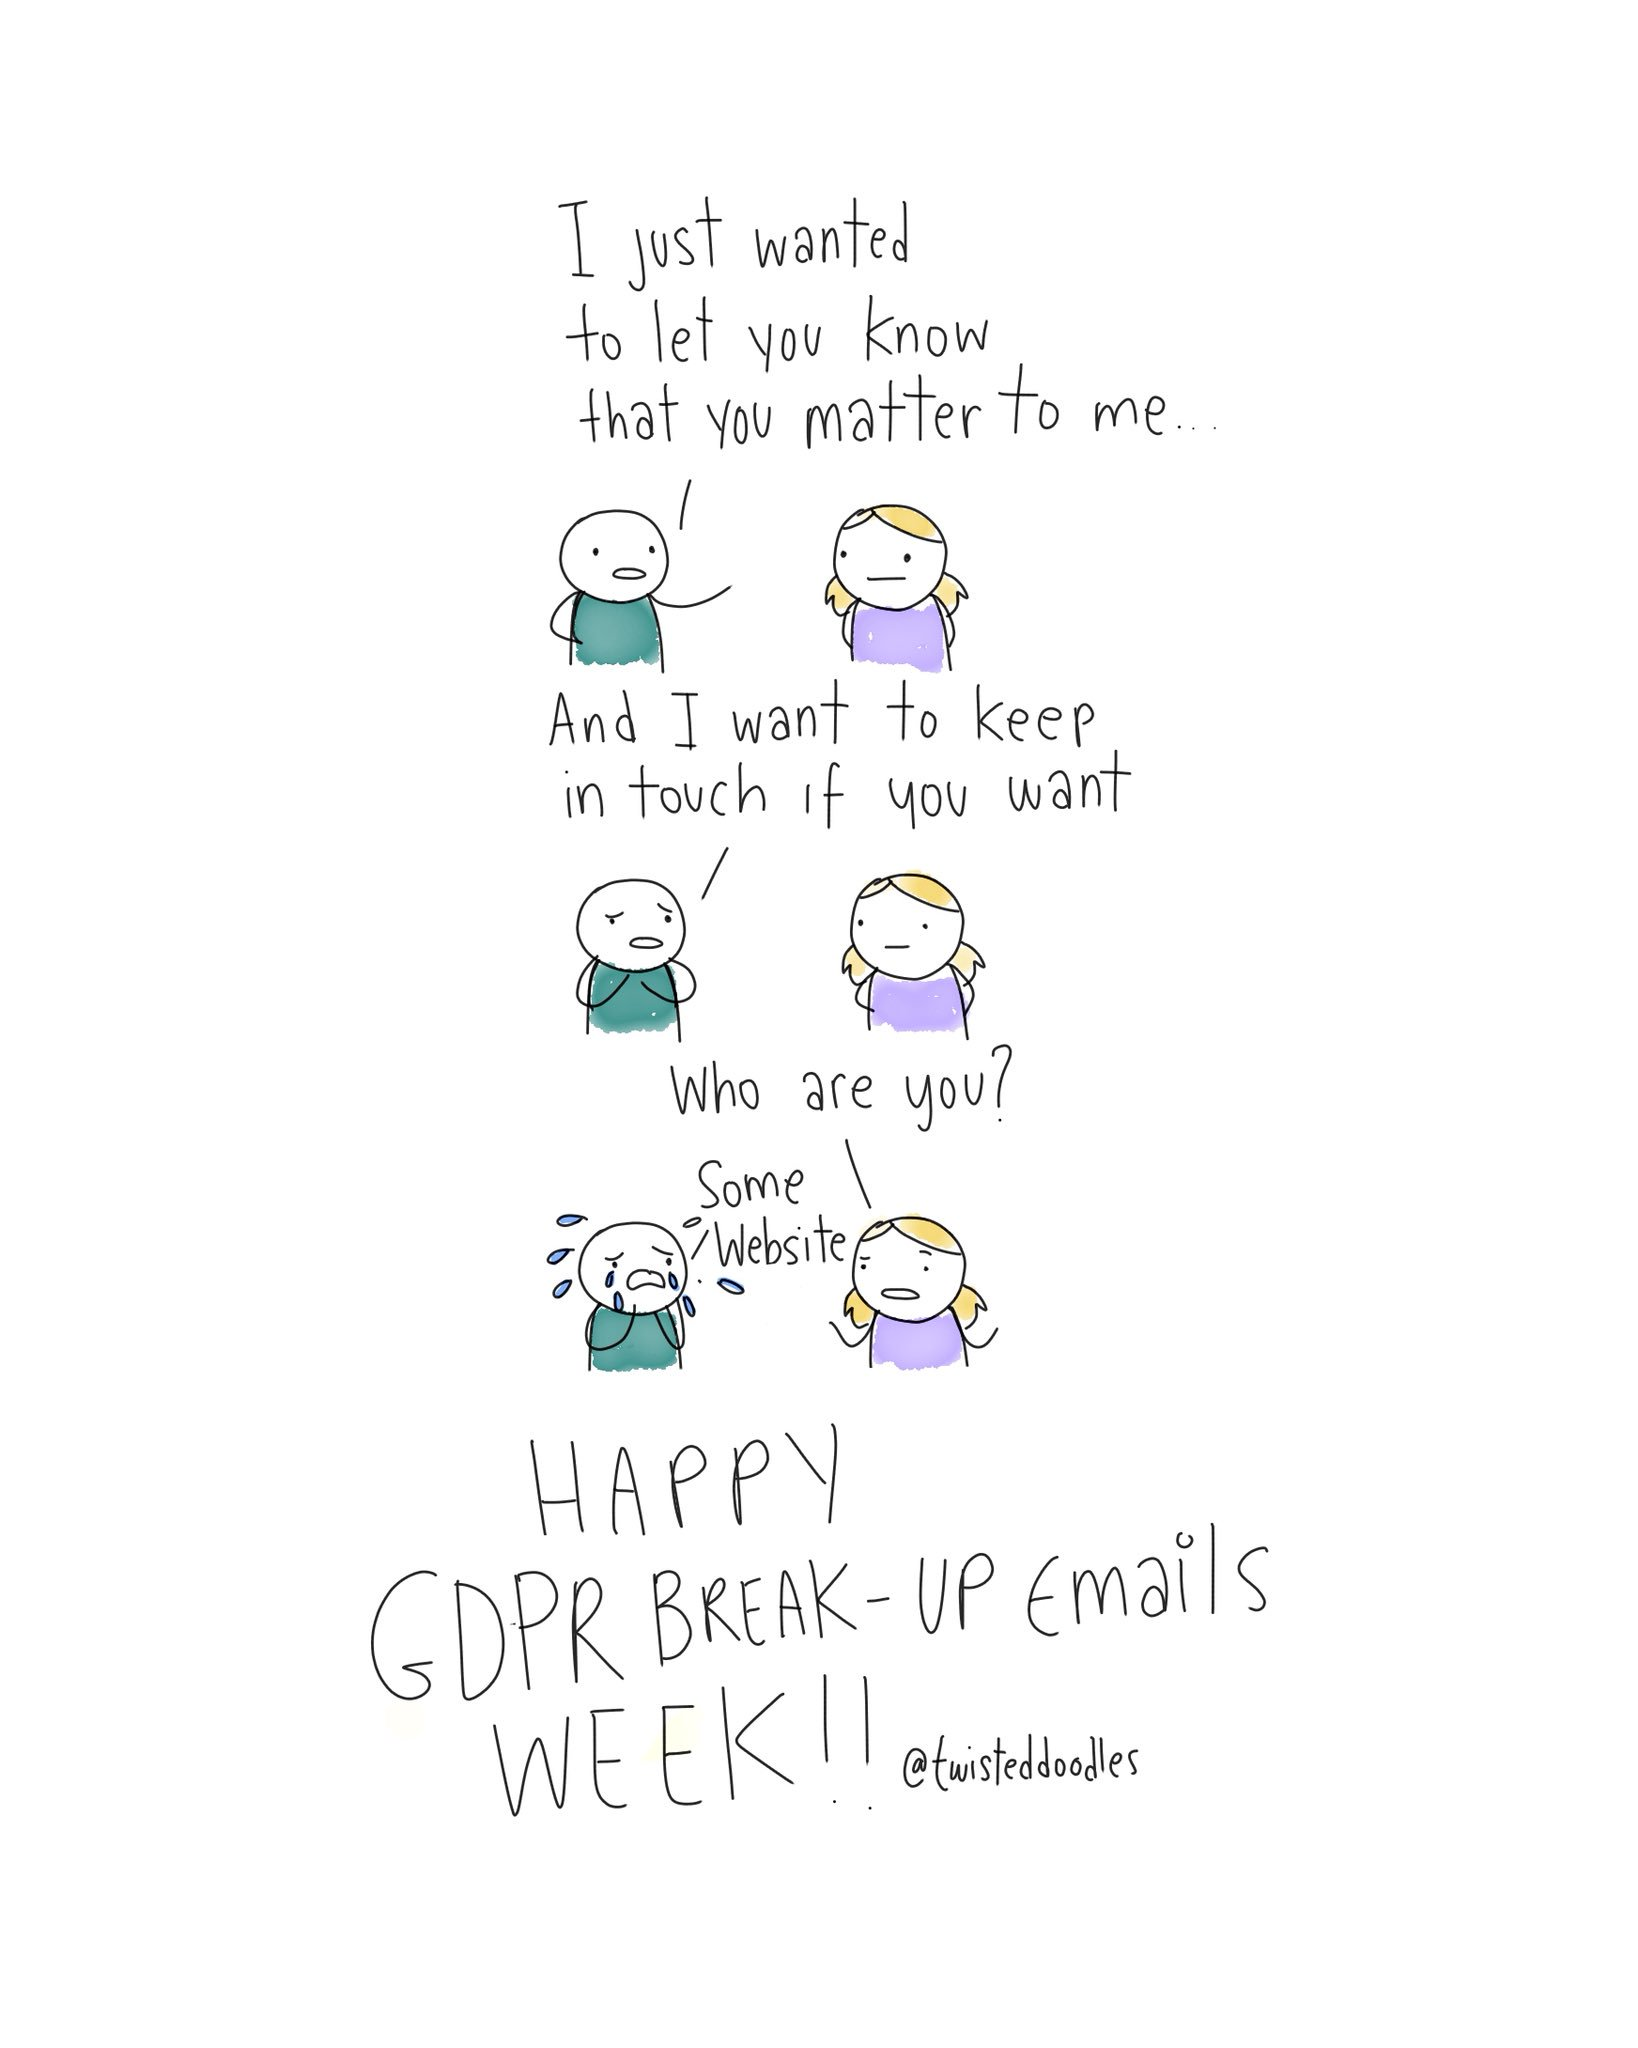 Happy RGPD break-up emails week!